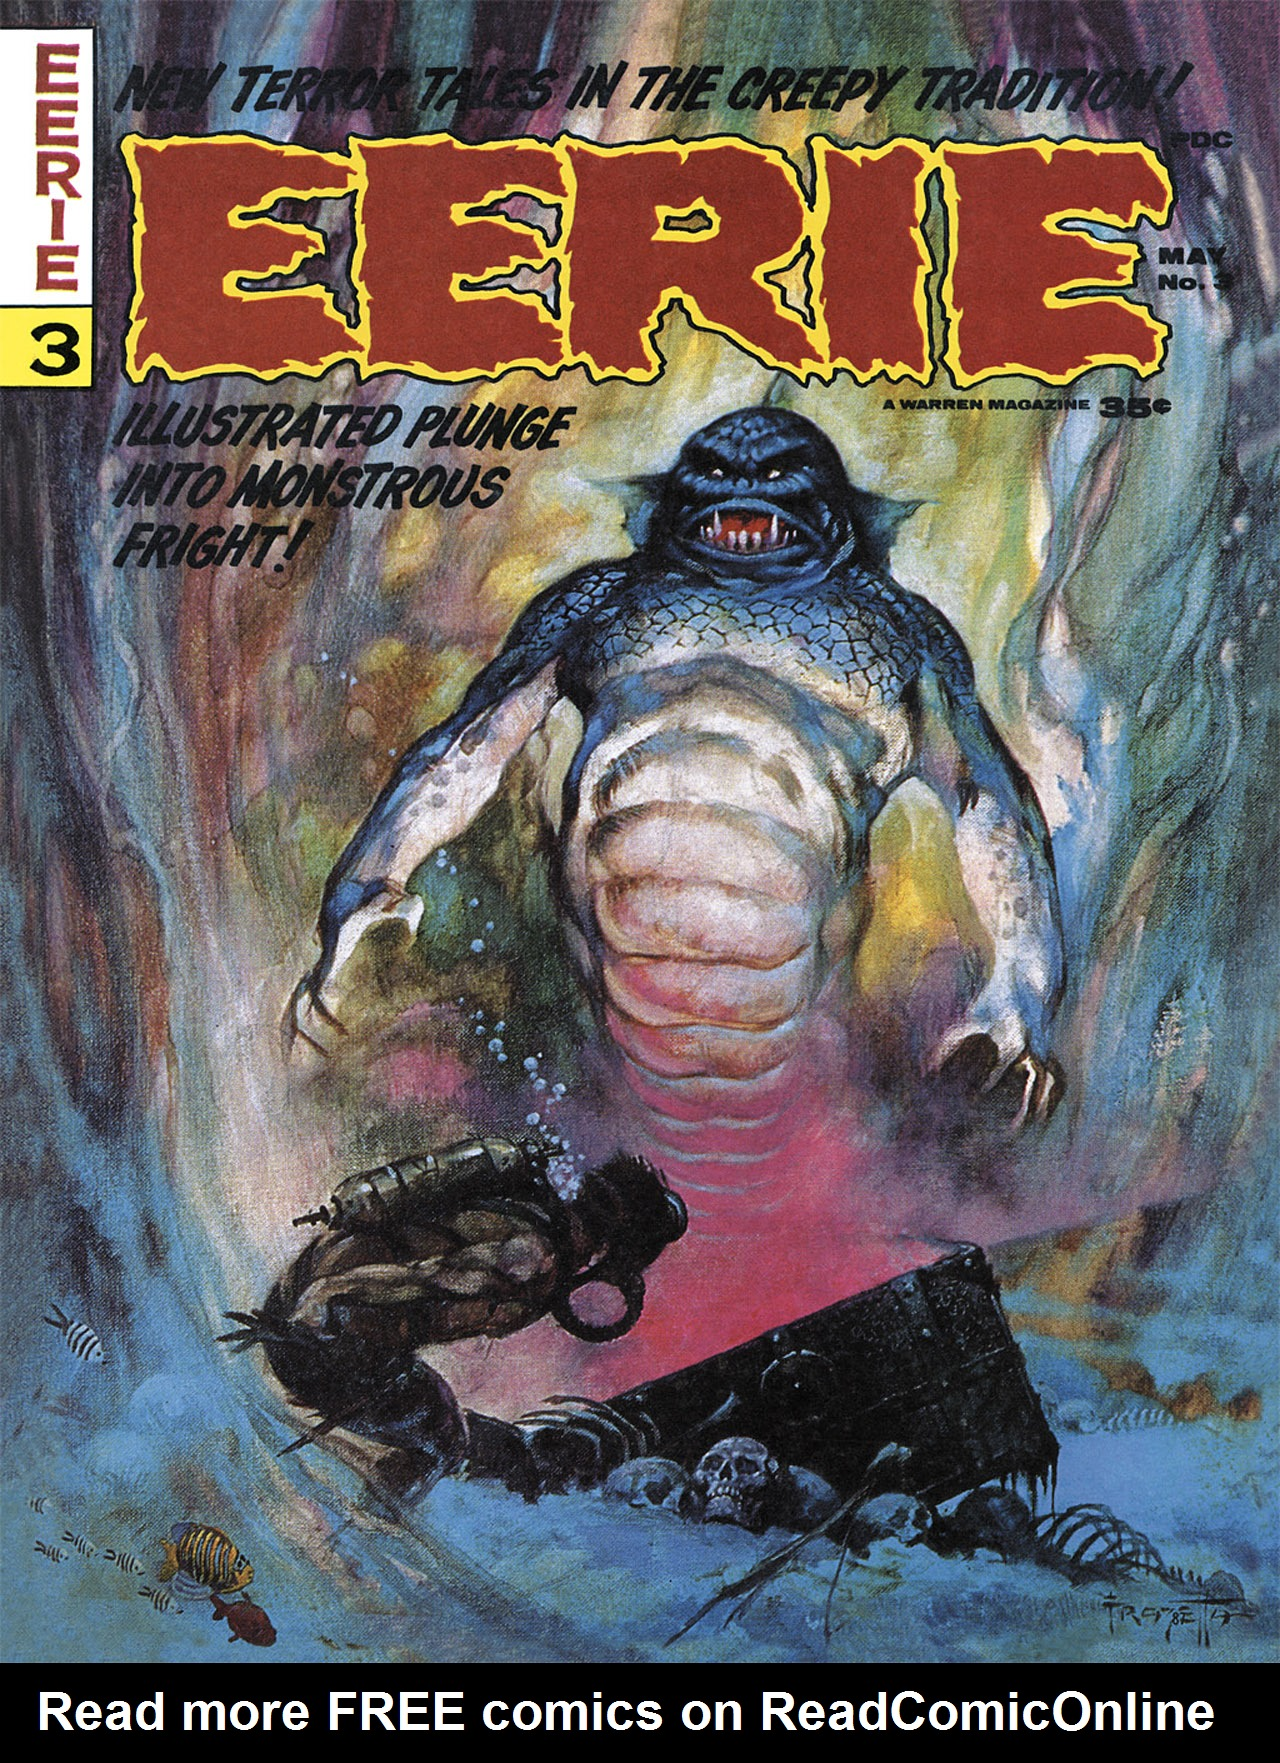 Read online Eerie Archives comic -  Issue # TPB 1 - 88